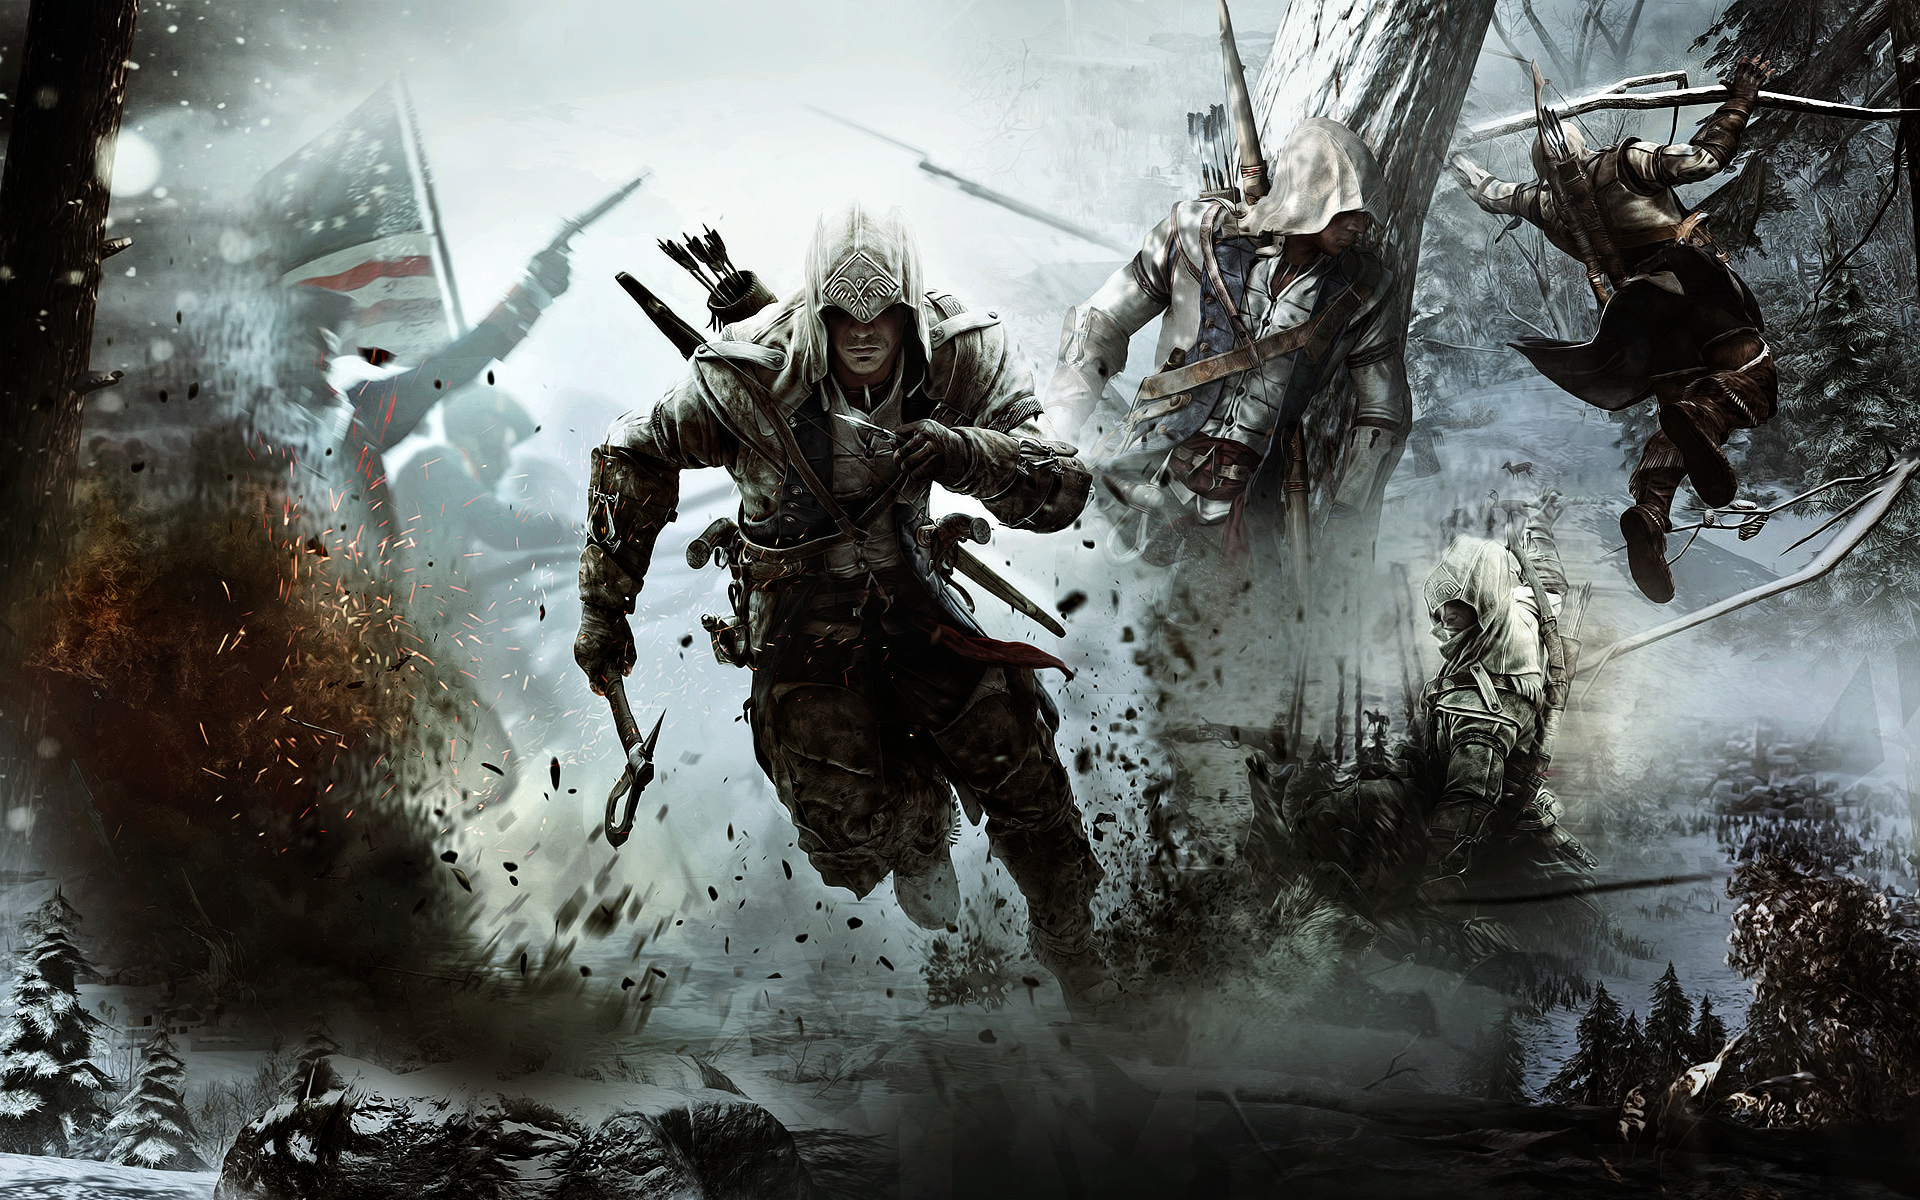 Assassin's Creed III - Assassin's Creed Wallpaper